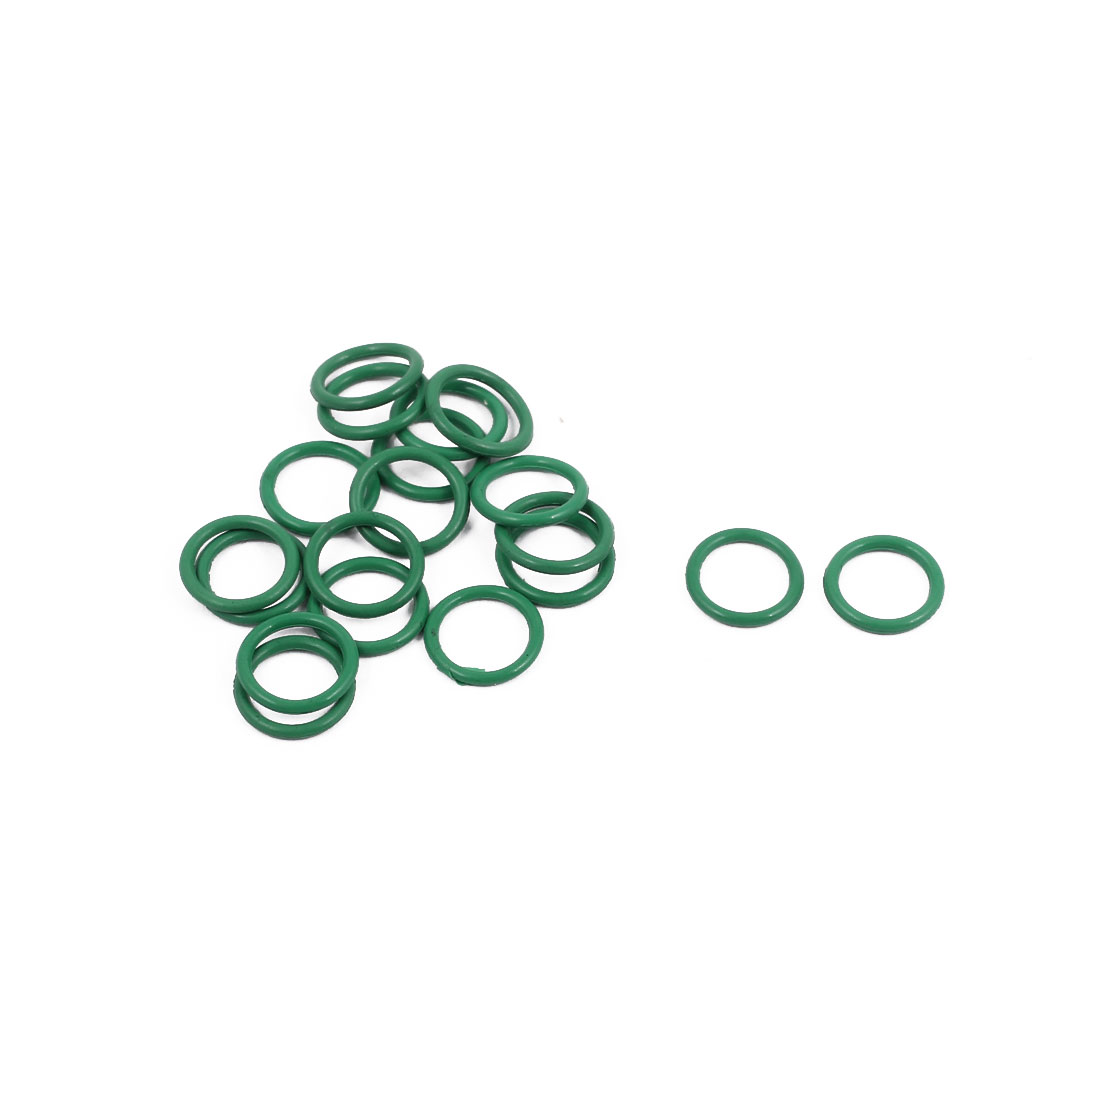 20Pcs 8mm x 1mm FKM O-rings Heat Resistant Sealing Ring Grommets Green